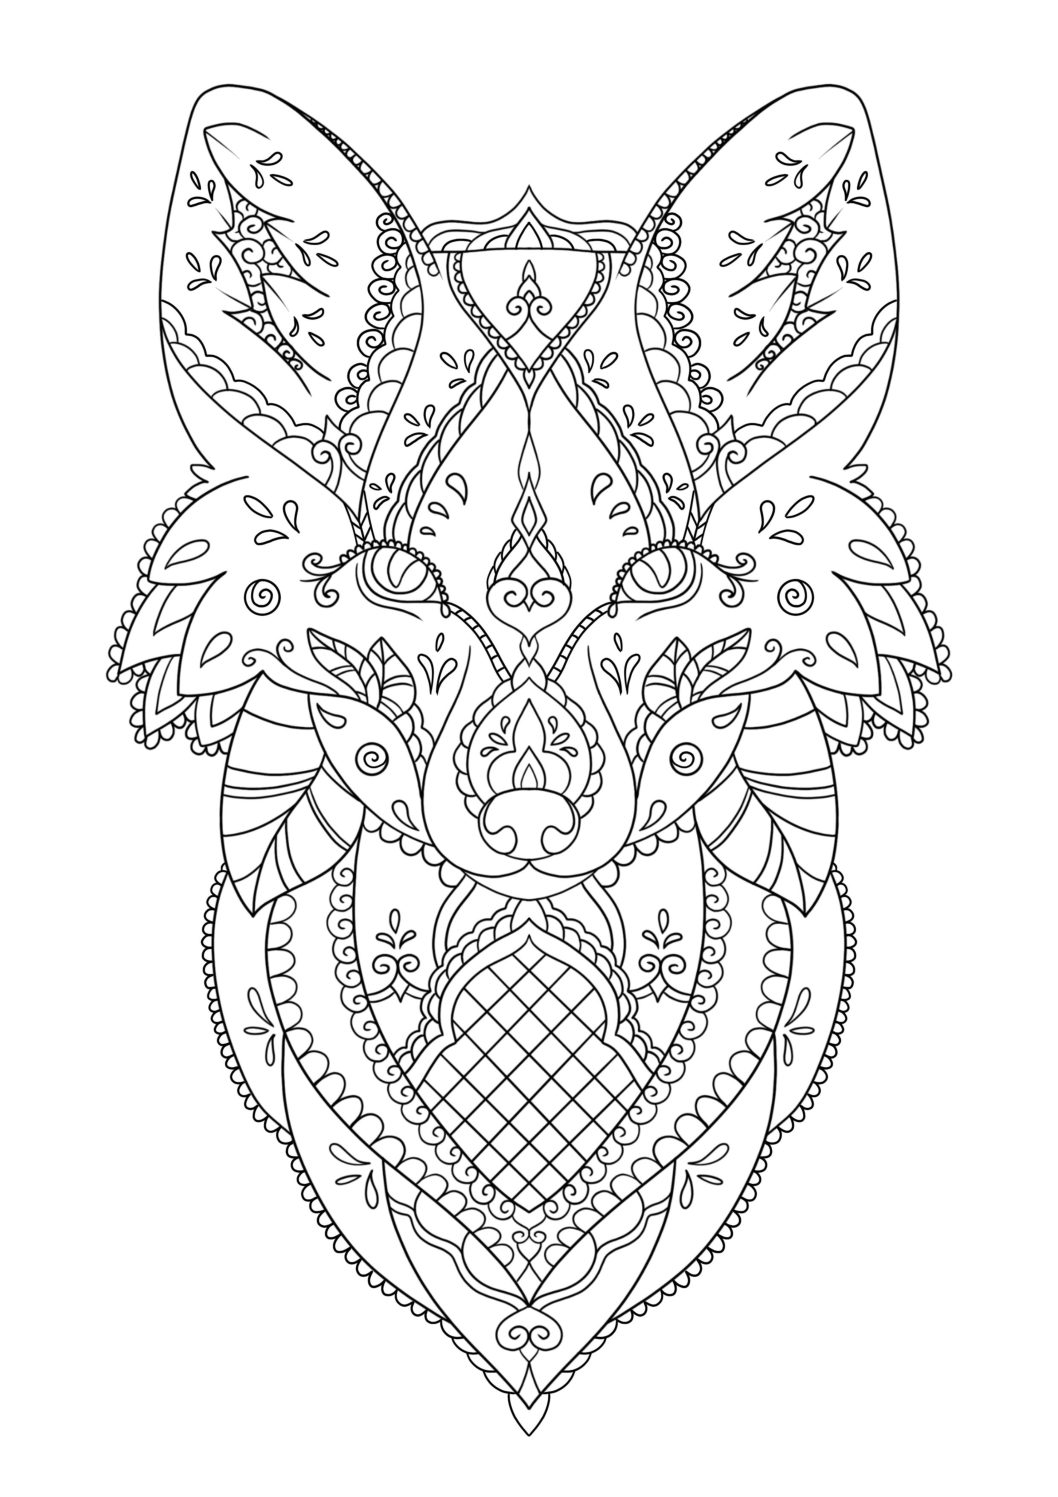 Daisy Nash Designs Downloadble Colouring Pages